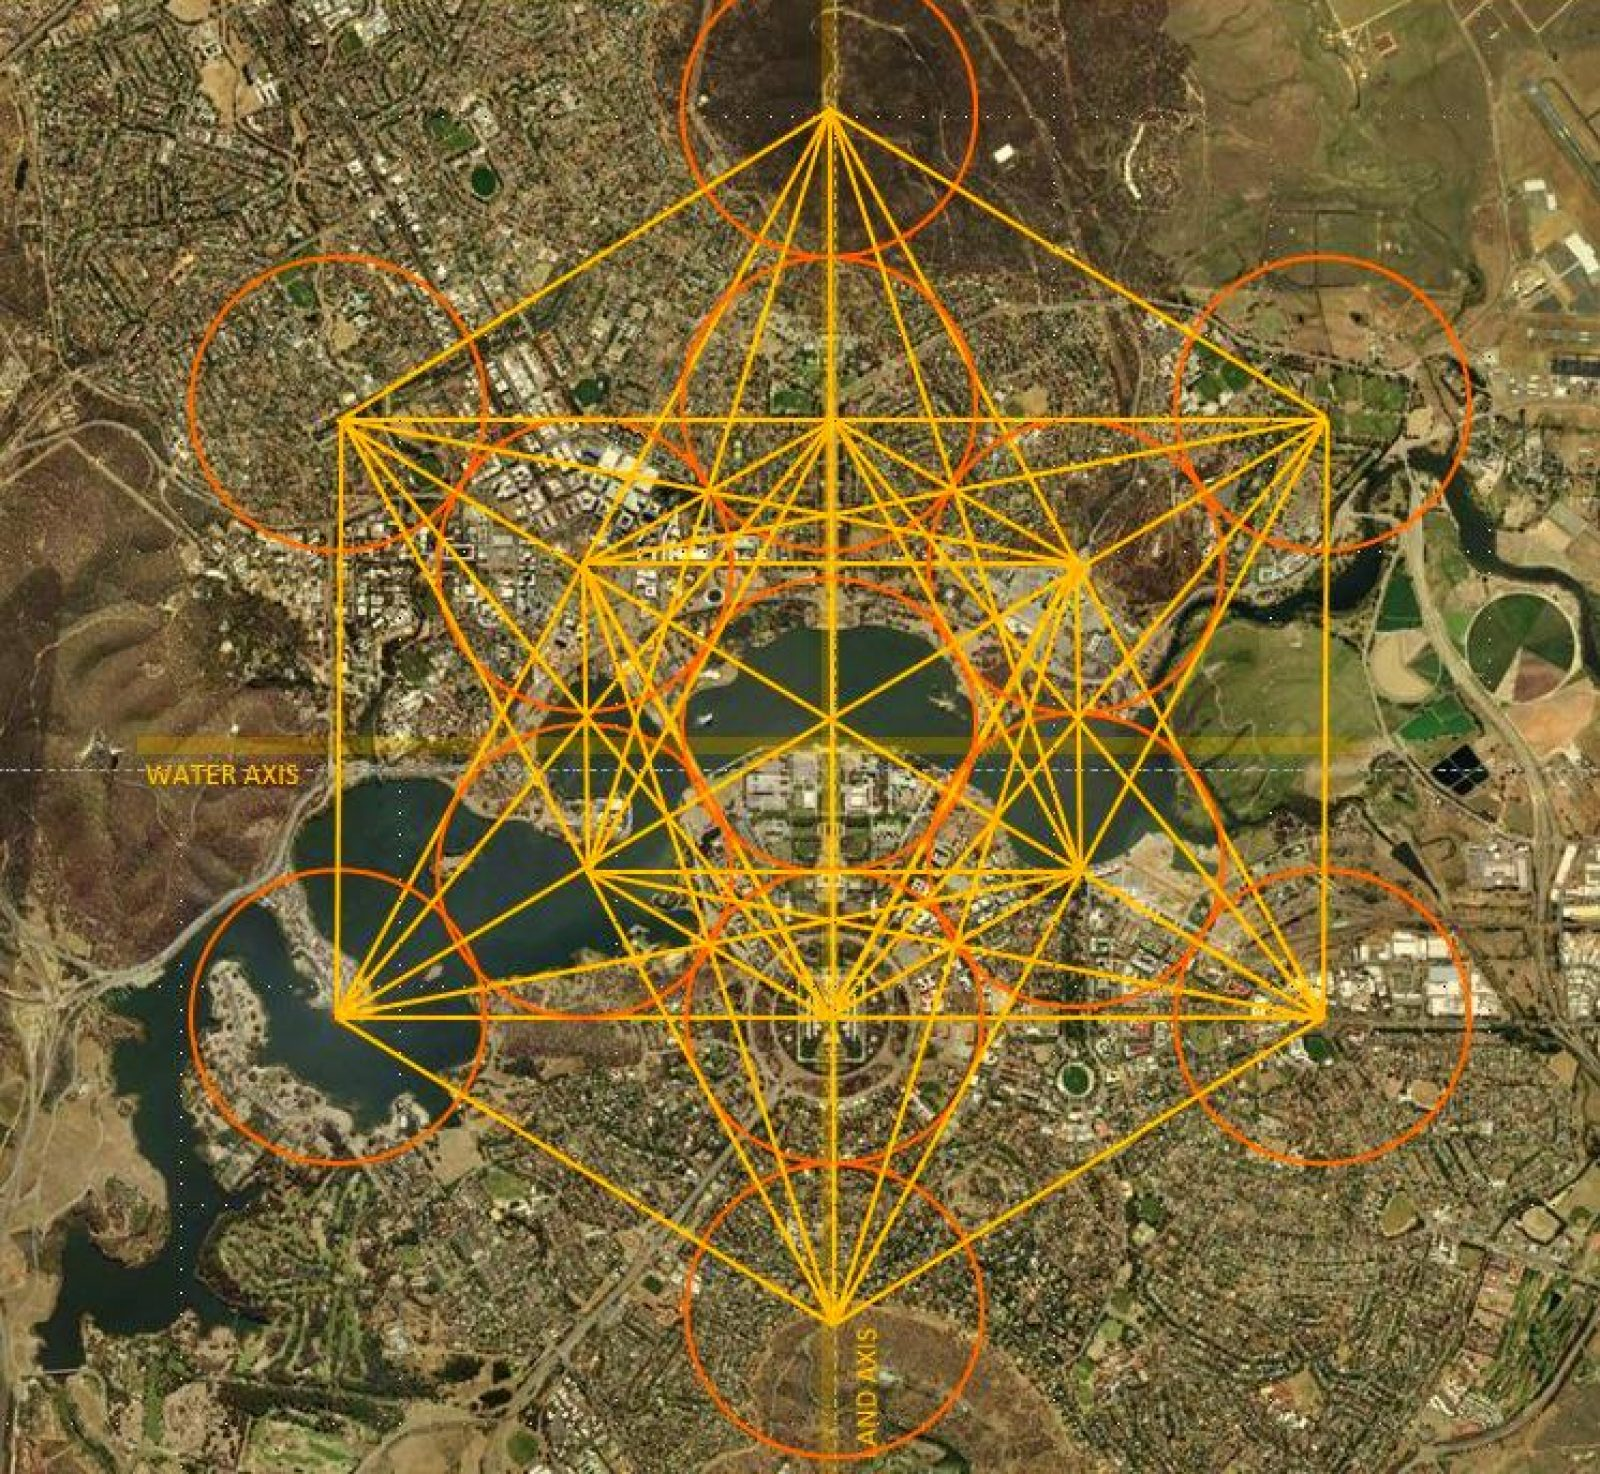 Metatron's Cube superimposed over the map of Canberra